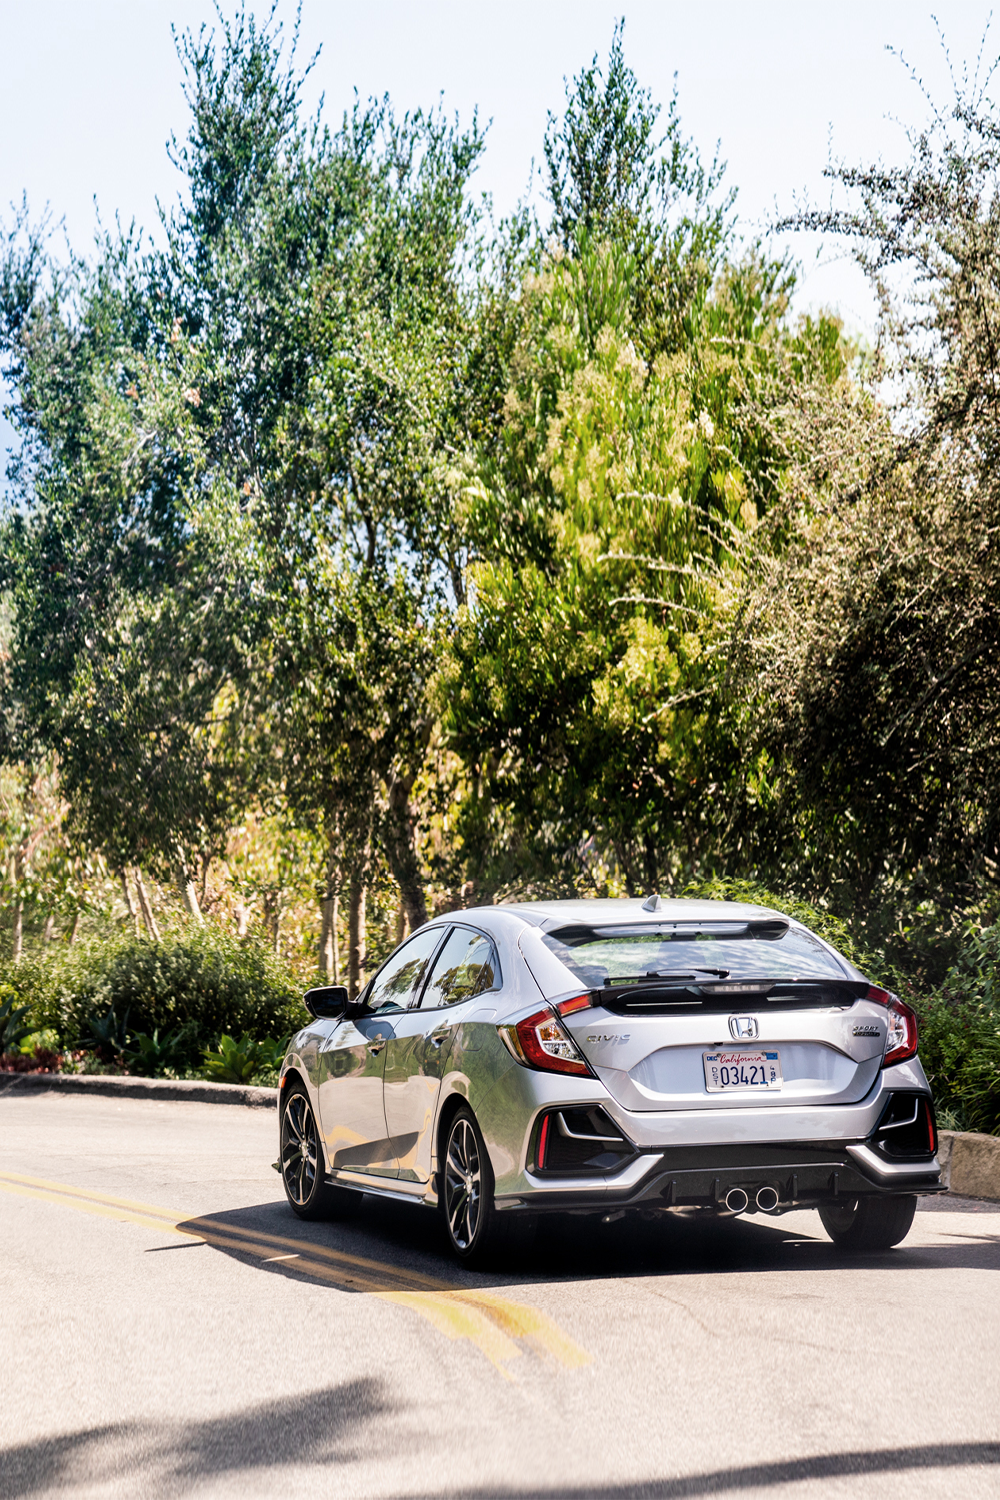 No Matter How Excited You Are For The Weekend You Need A Reliable Vehicle That S Why The 2020 Civic Hatchba Honda Civic Hatchback Civic Hatchback Honda Civic